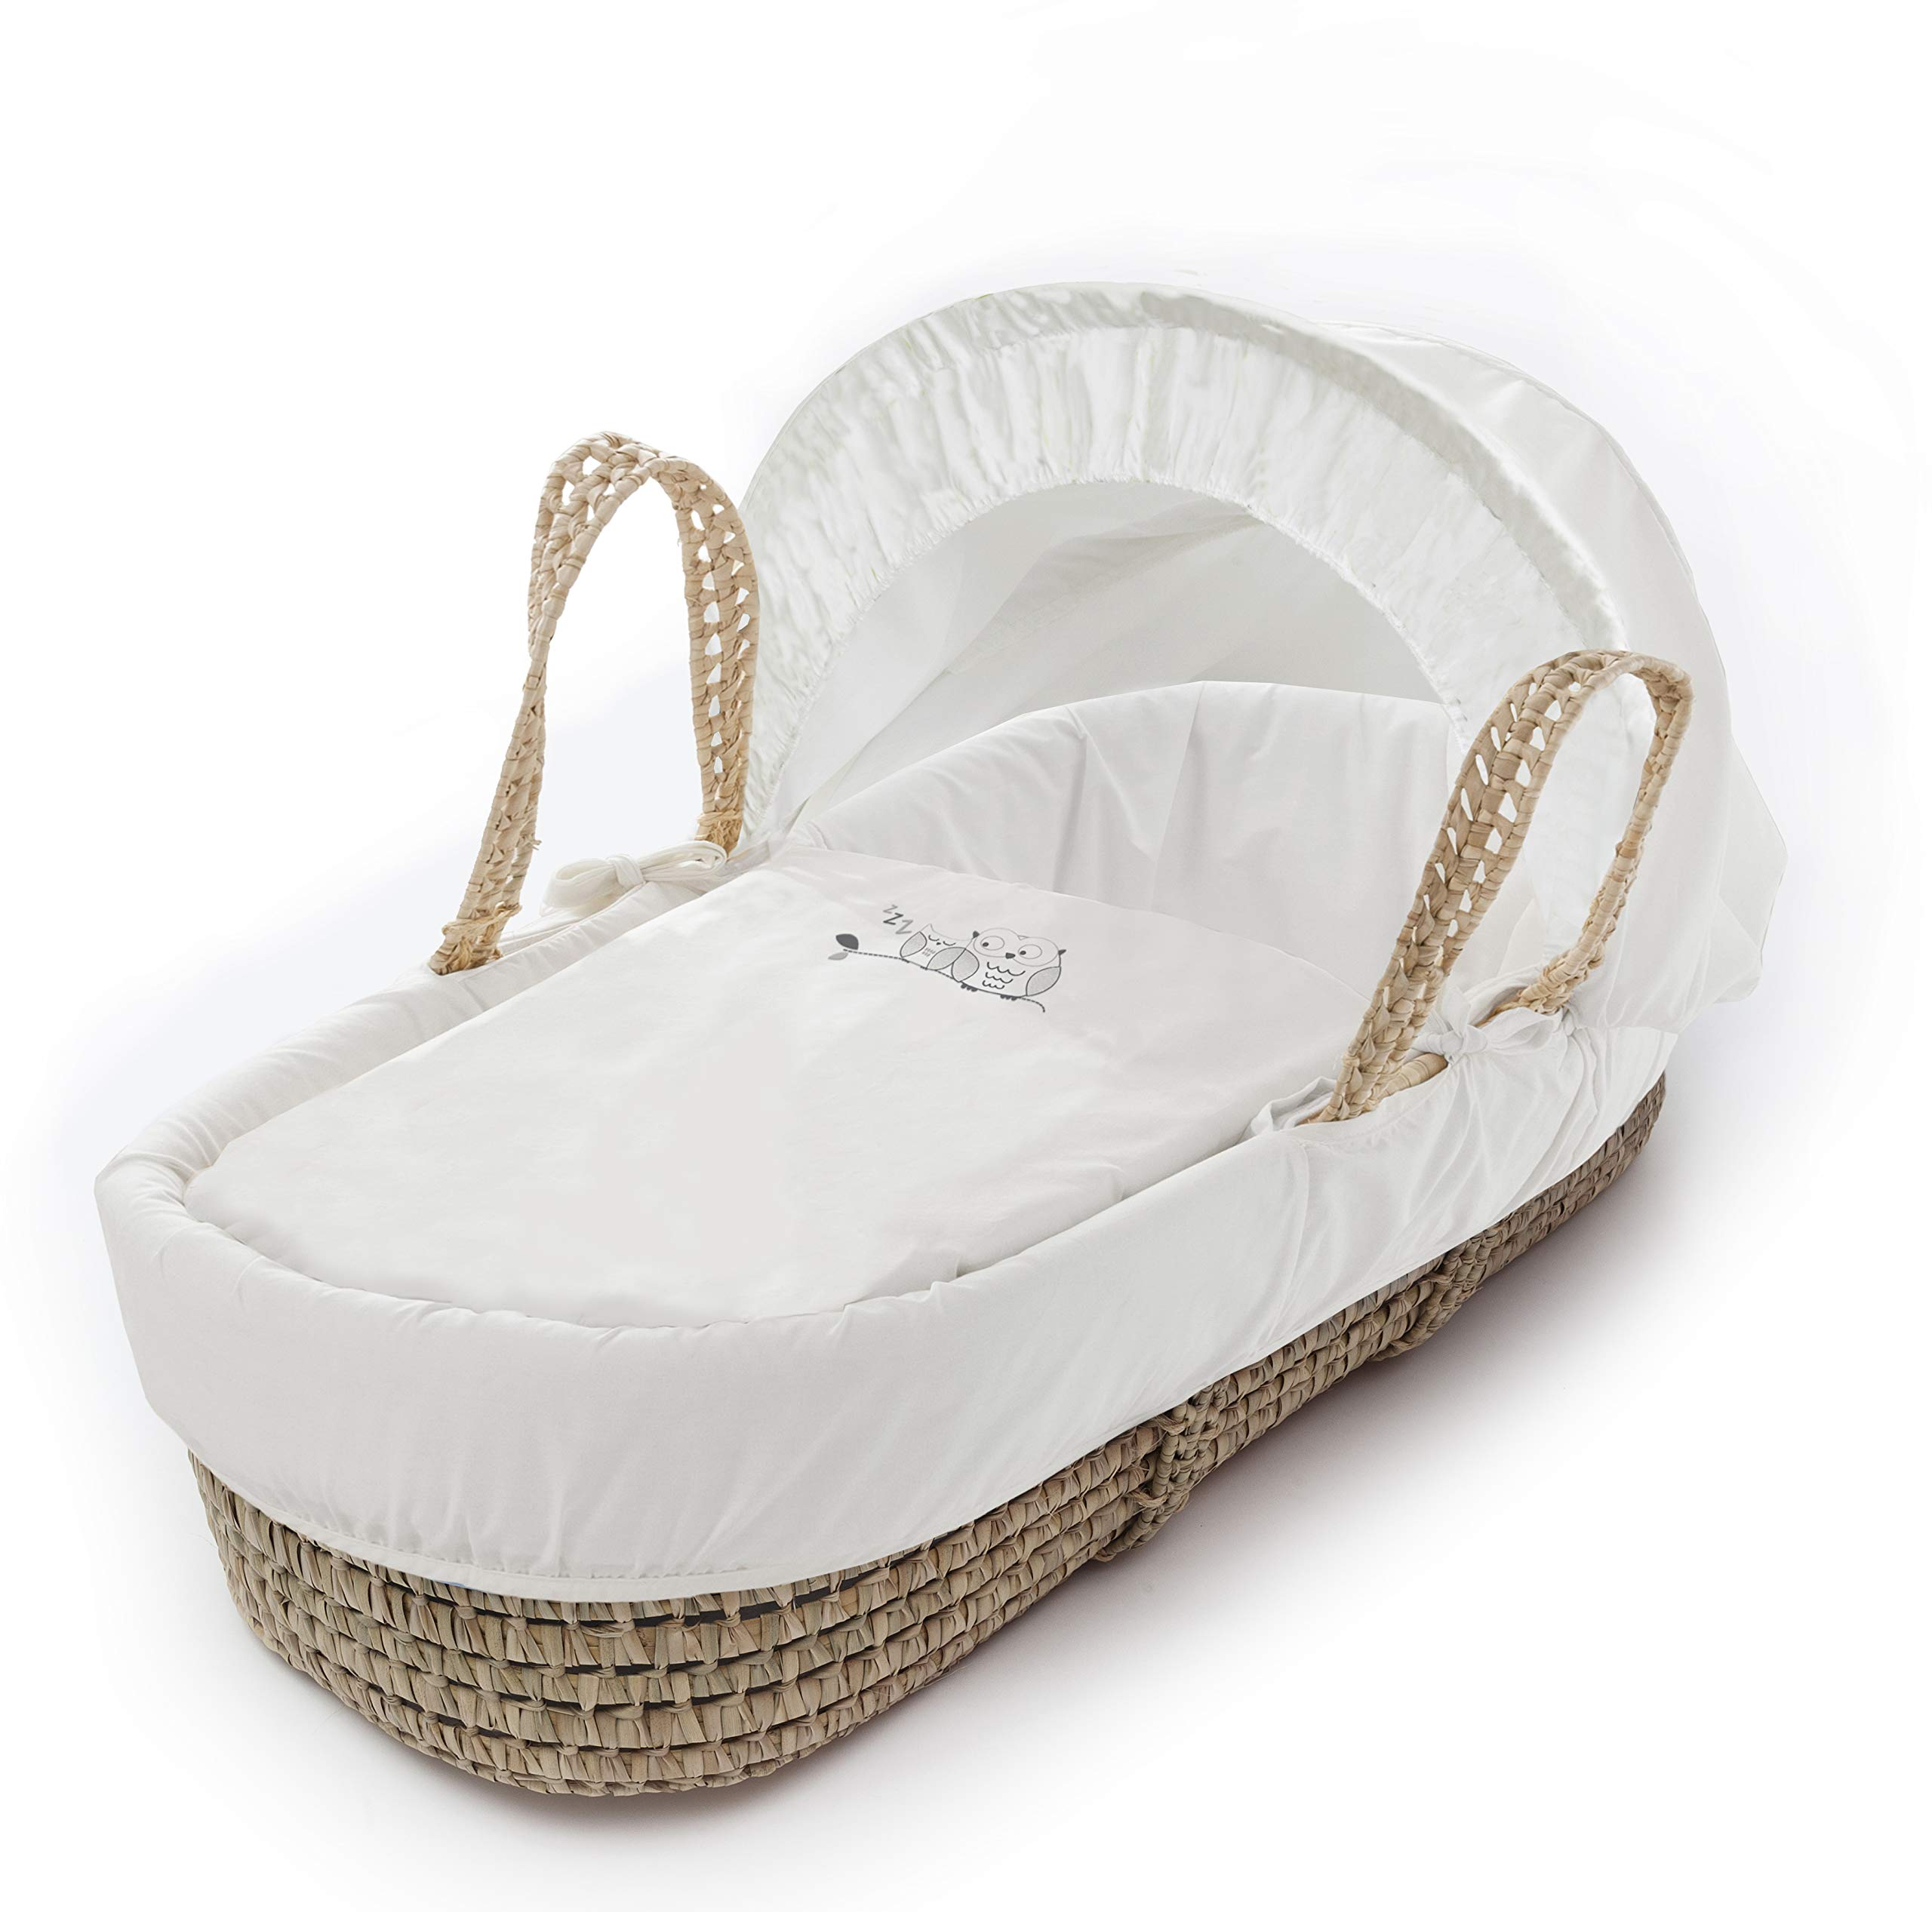 Sleepy Little Owl Palm Moses Basket & Folding Stand Elegant Baby Suitable from newborn for up to 9kg, this Moses Basket uses Easy-care Poly Cotton with a soft padding surround Suitable from newborn to 9 months It also includes a comfortable mattress and an adjustable hood perfect to create a cosy sleeping space for your precious little one 4